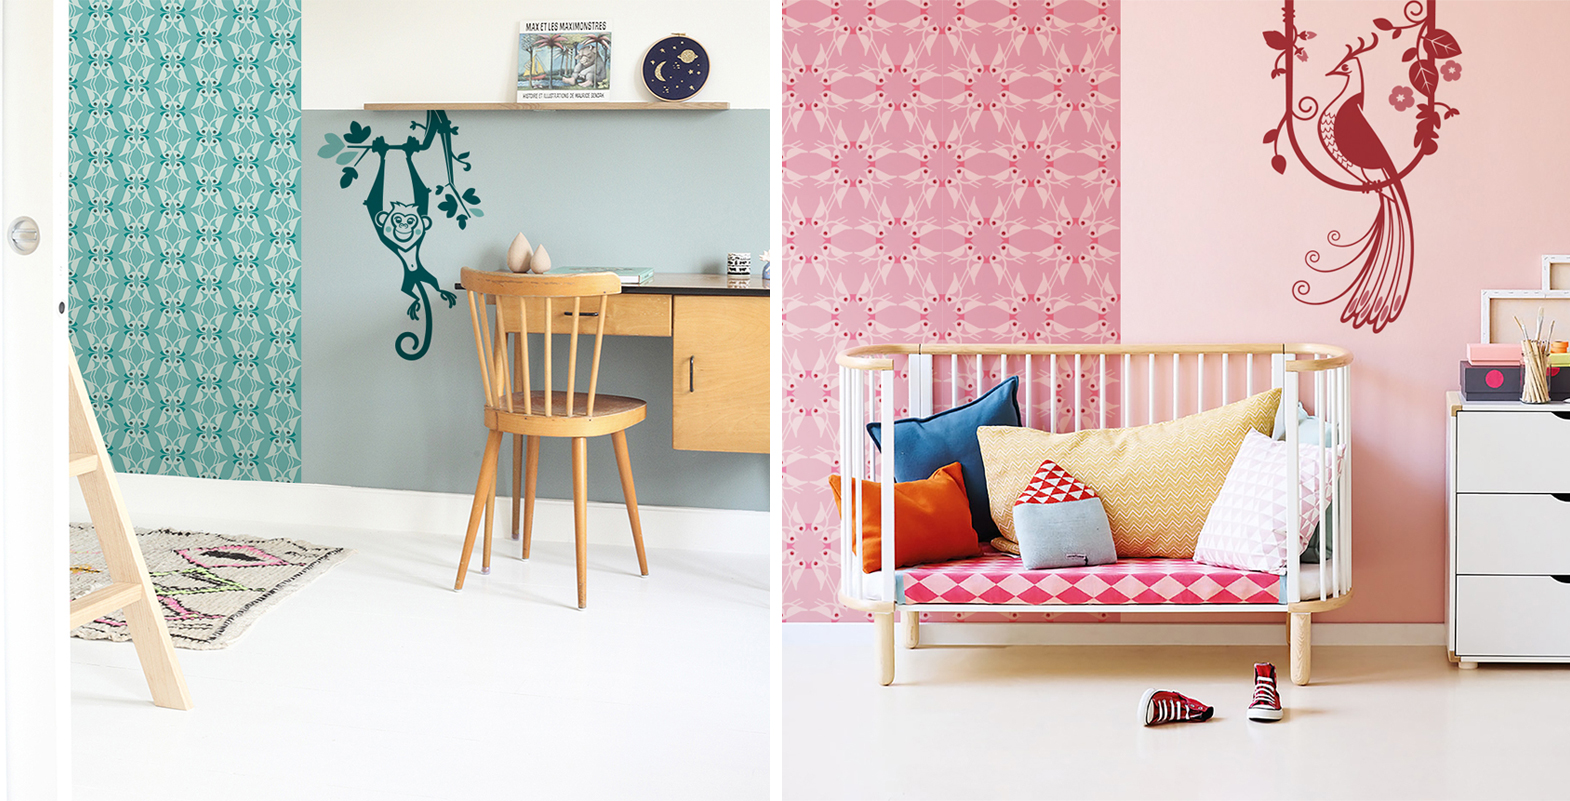 matching baby wall decals with wallpaper for decorating a kids room